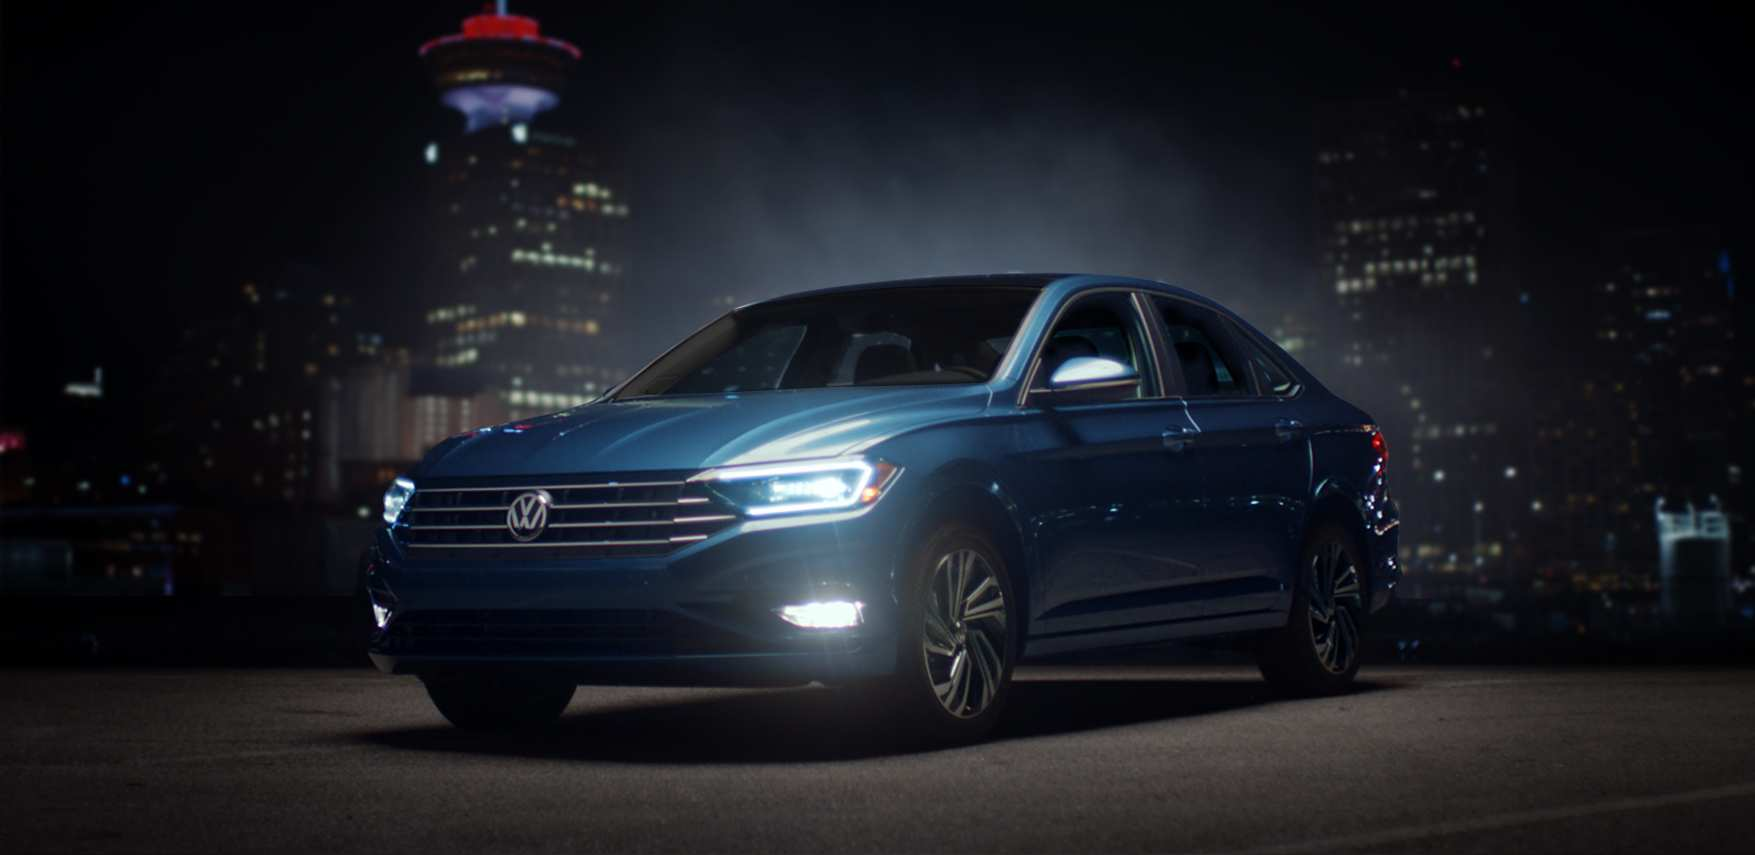 55 All New Vw Jetta 2019 Canada Price Design And Review